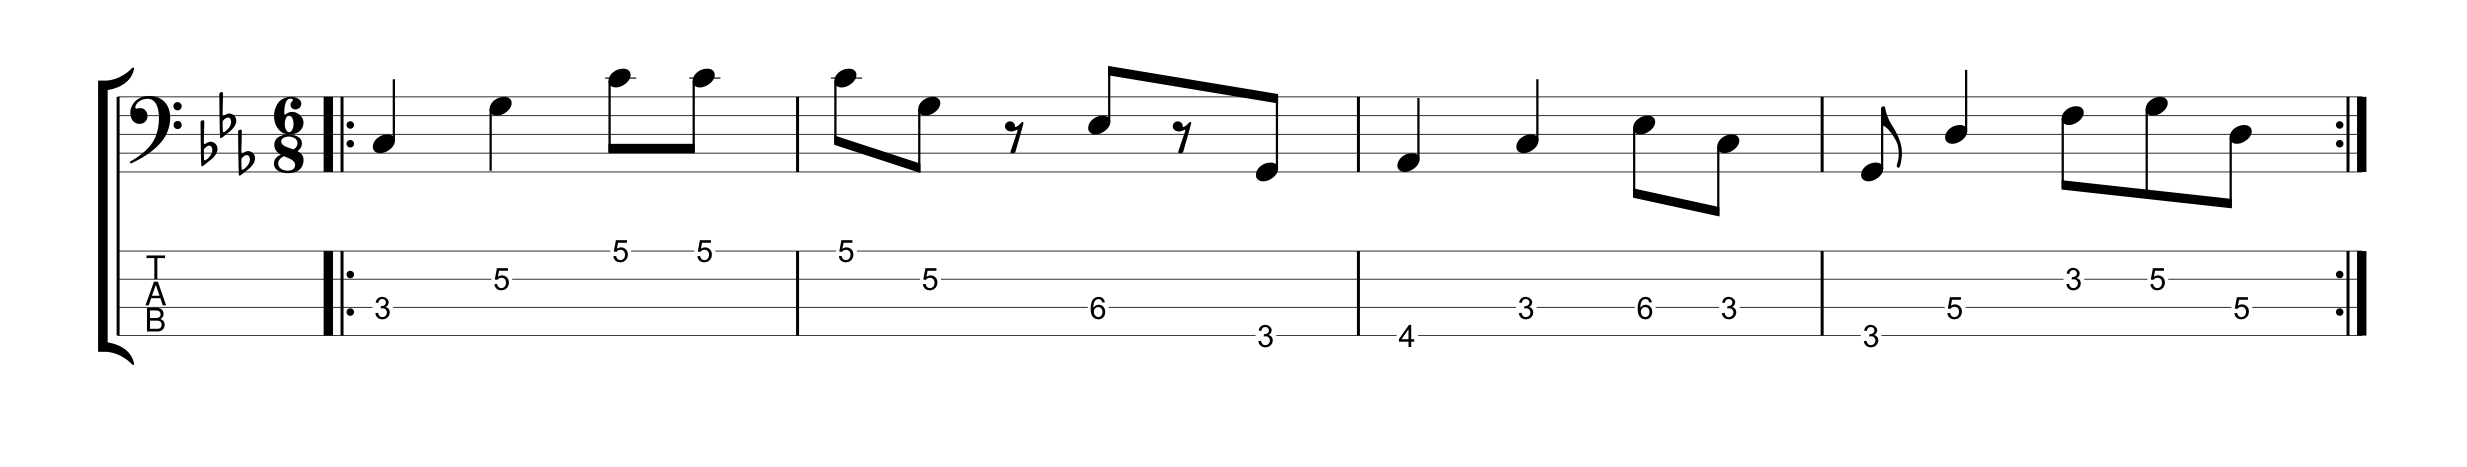 6/8 Time Signature - Example 2